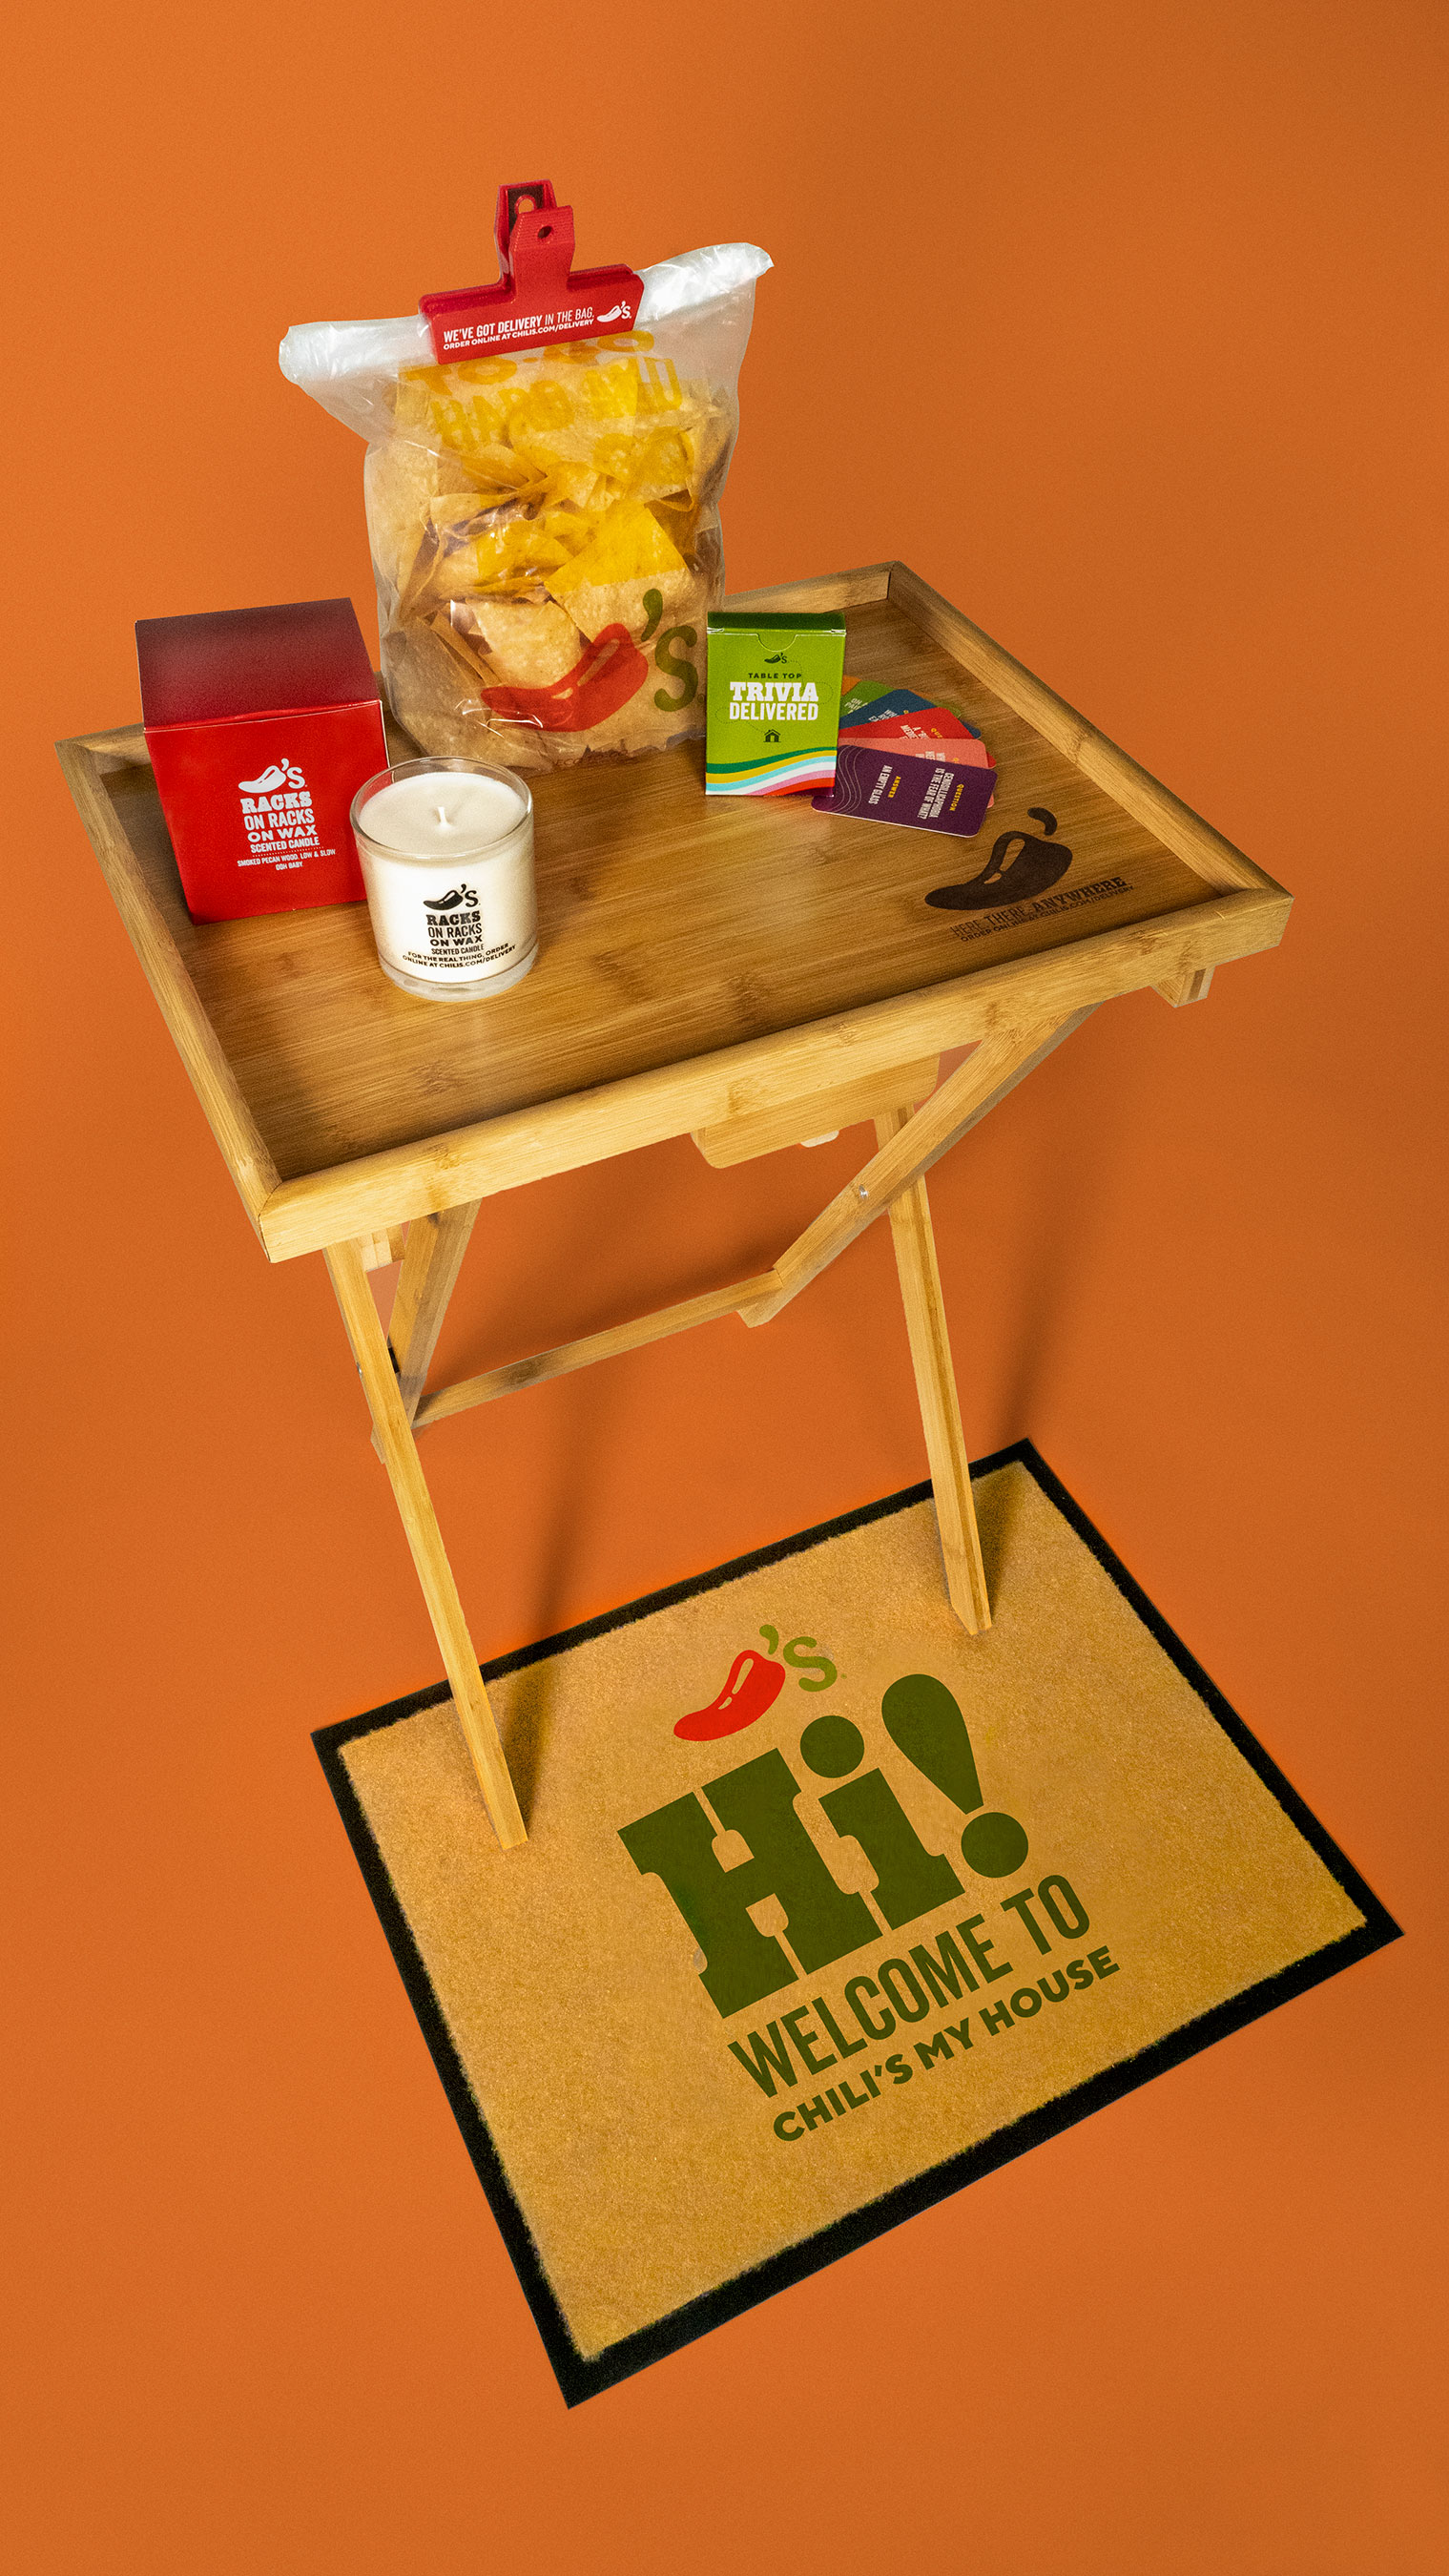 Order Chili's delivery for your chance to get your hands on one of these custom starter packs!